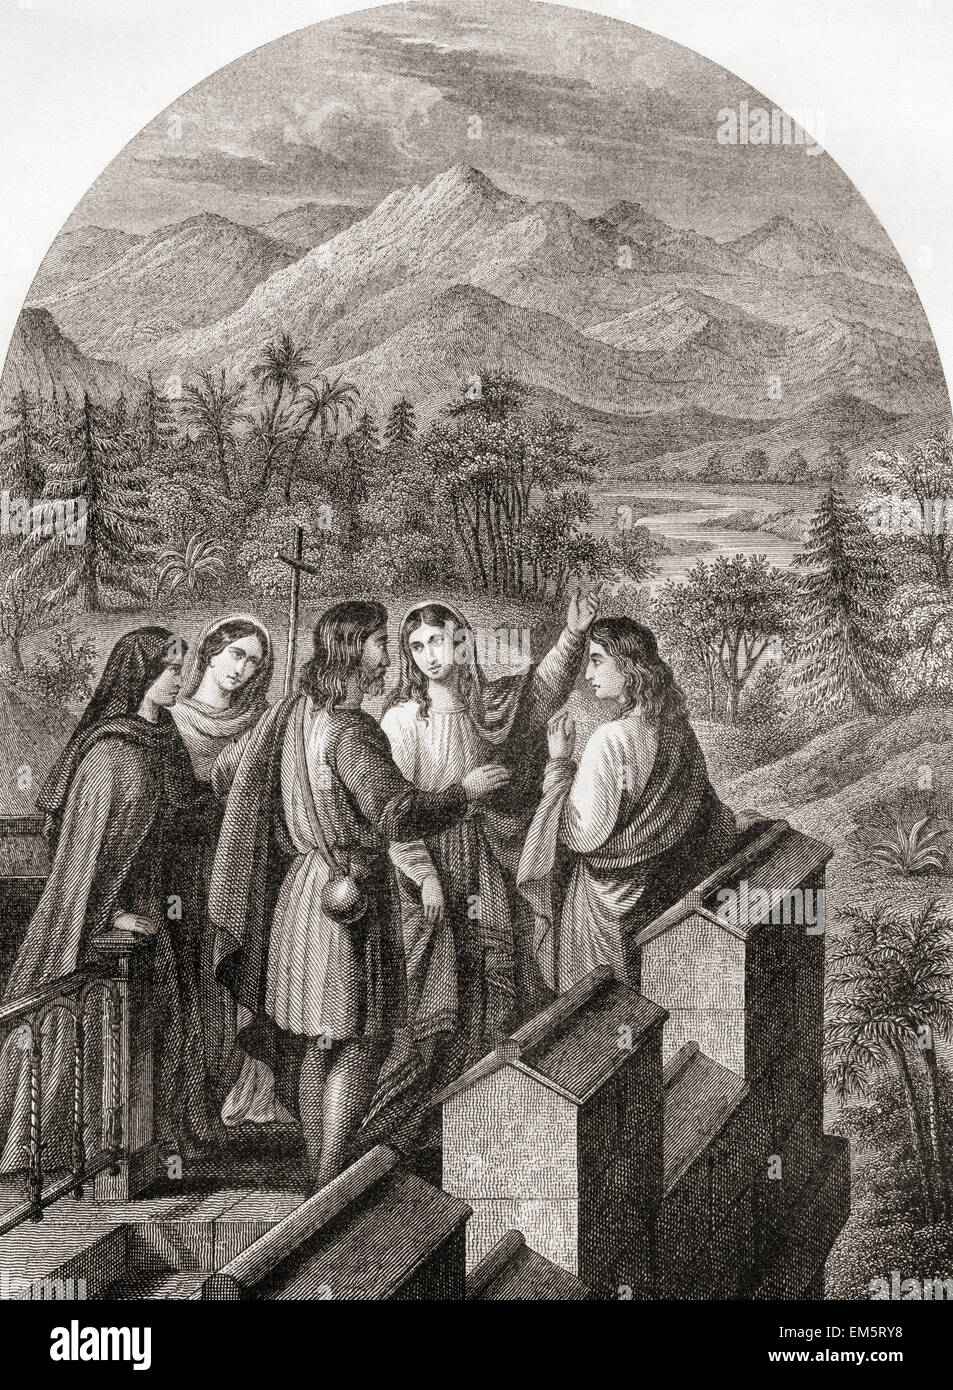 The Delectable Mountains from the housetop.  From The Pilgrim's Progress by John Bunyan. - Stock Image